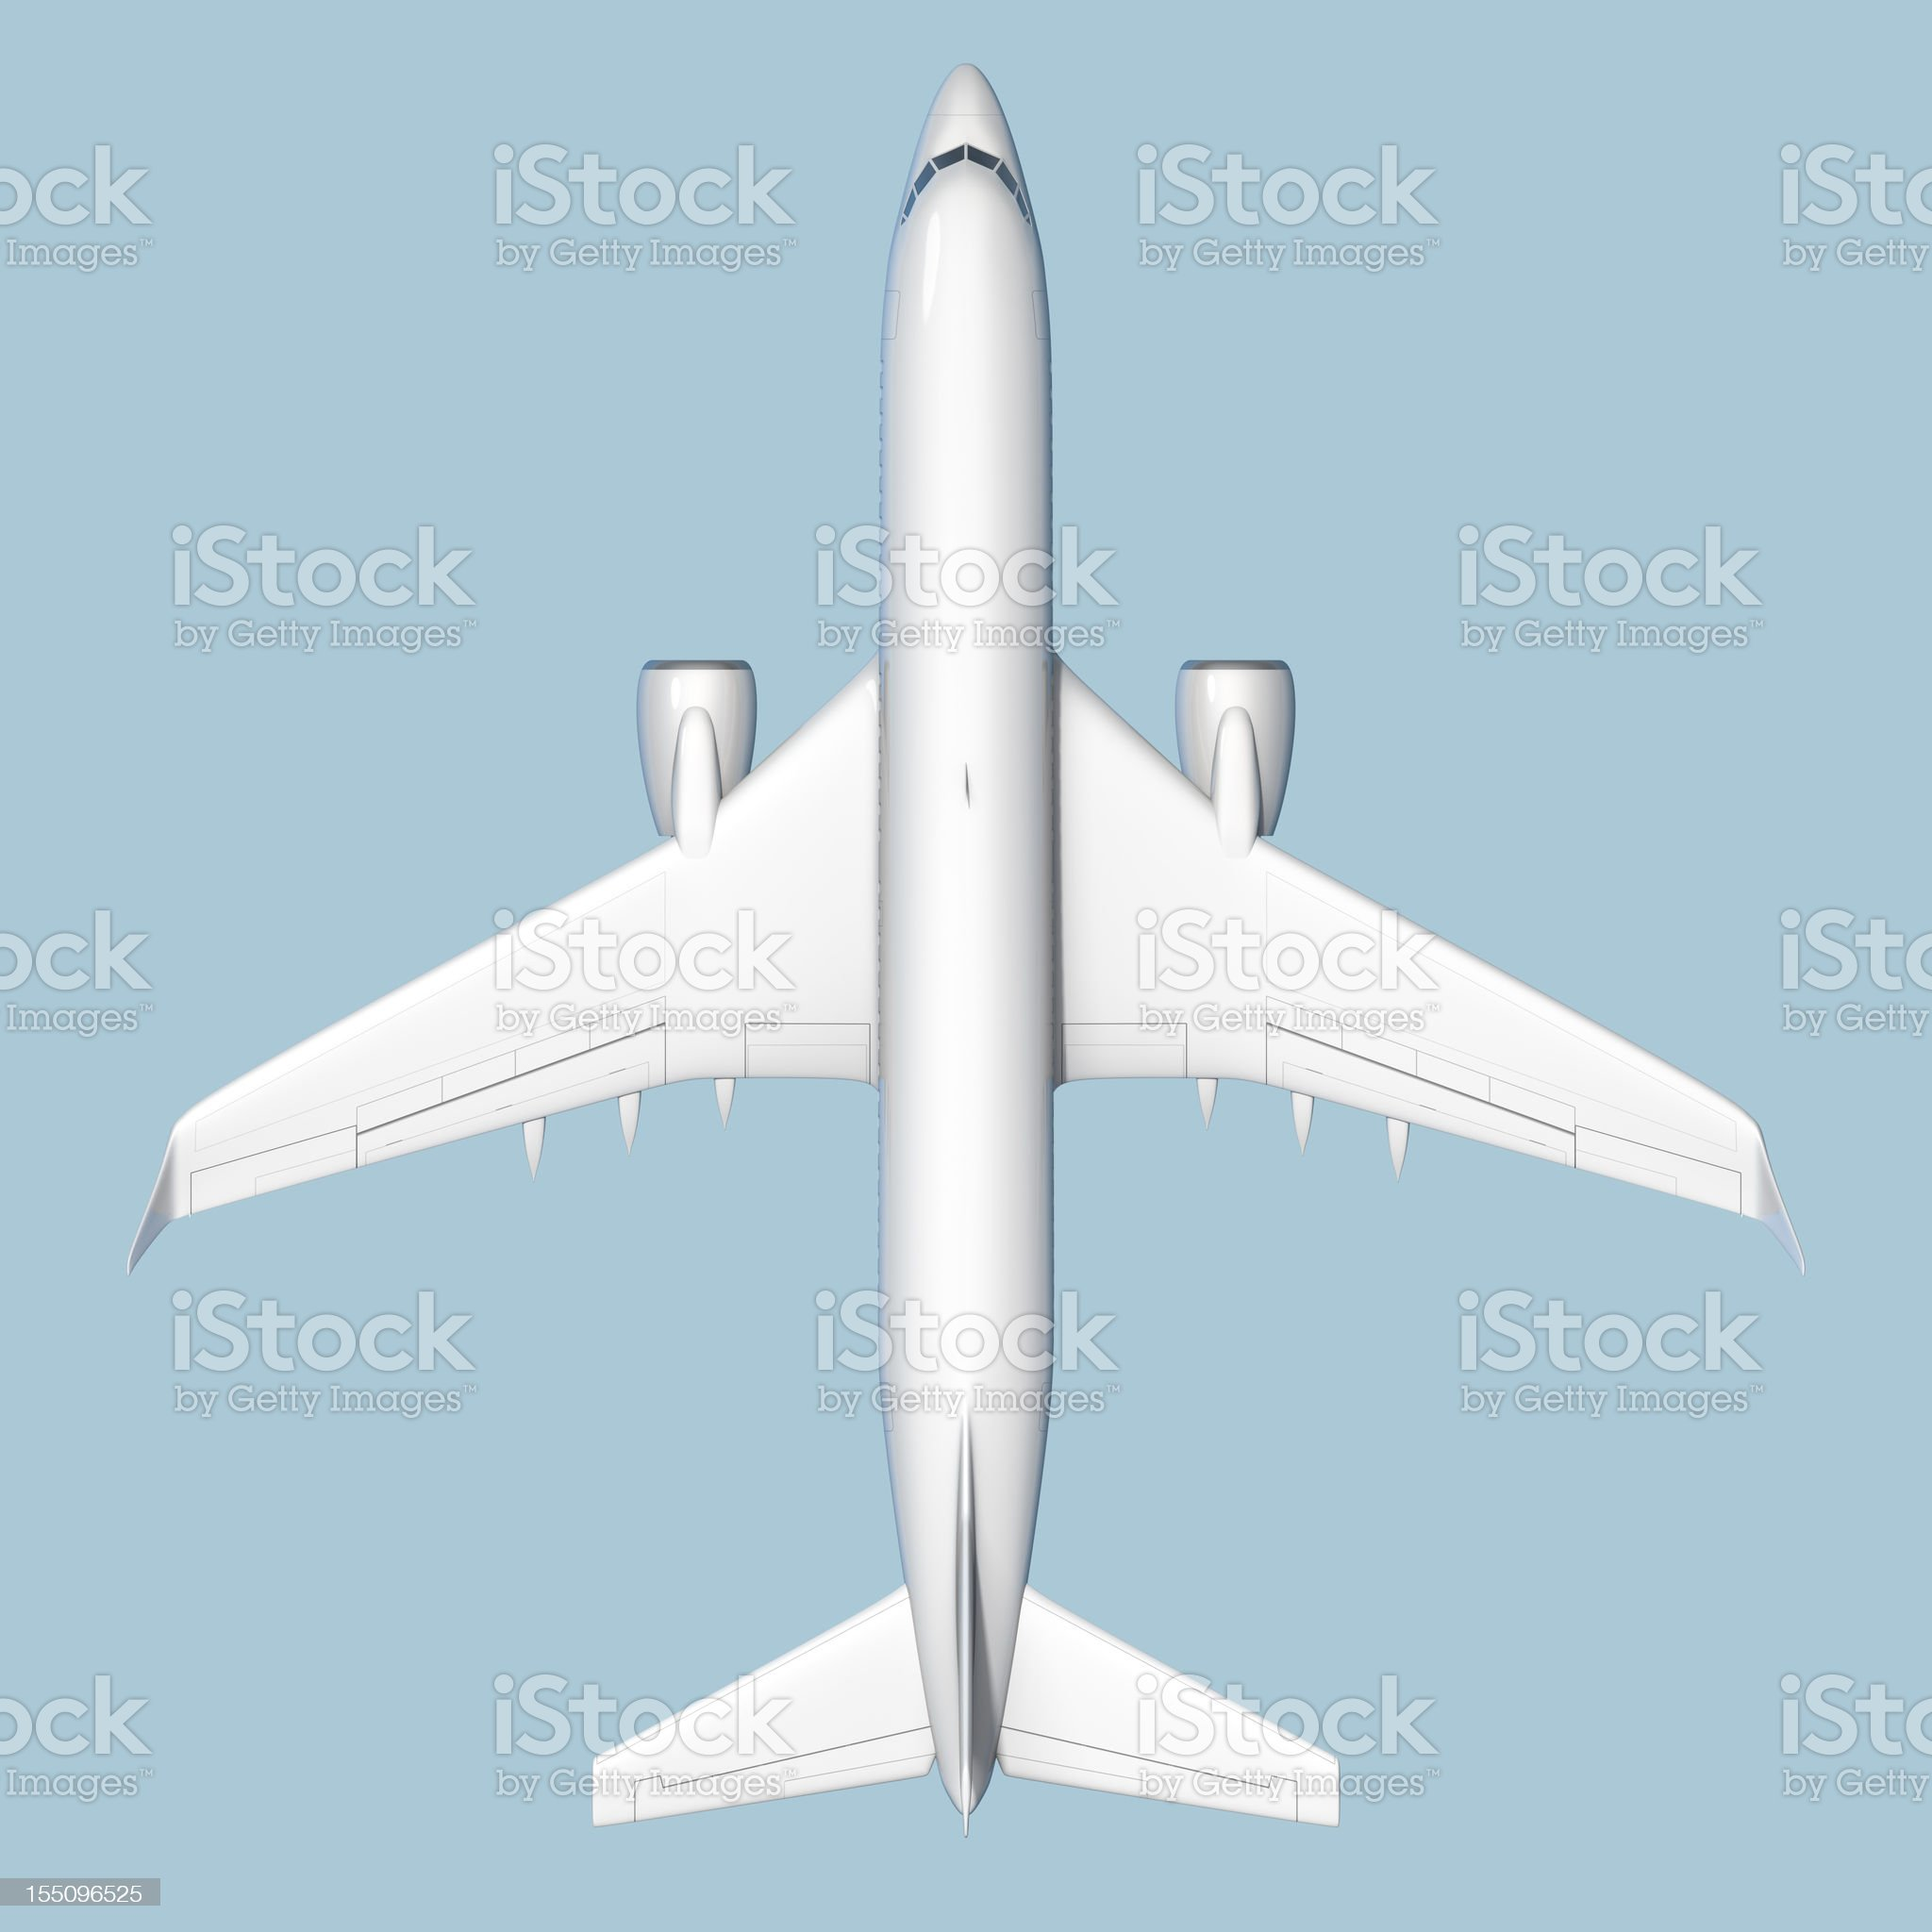 Top view of passenger airplane isolated on blue background royalty-free stock vector art